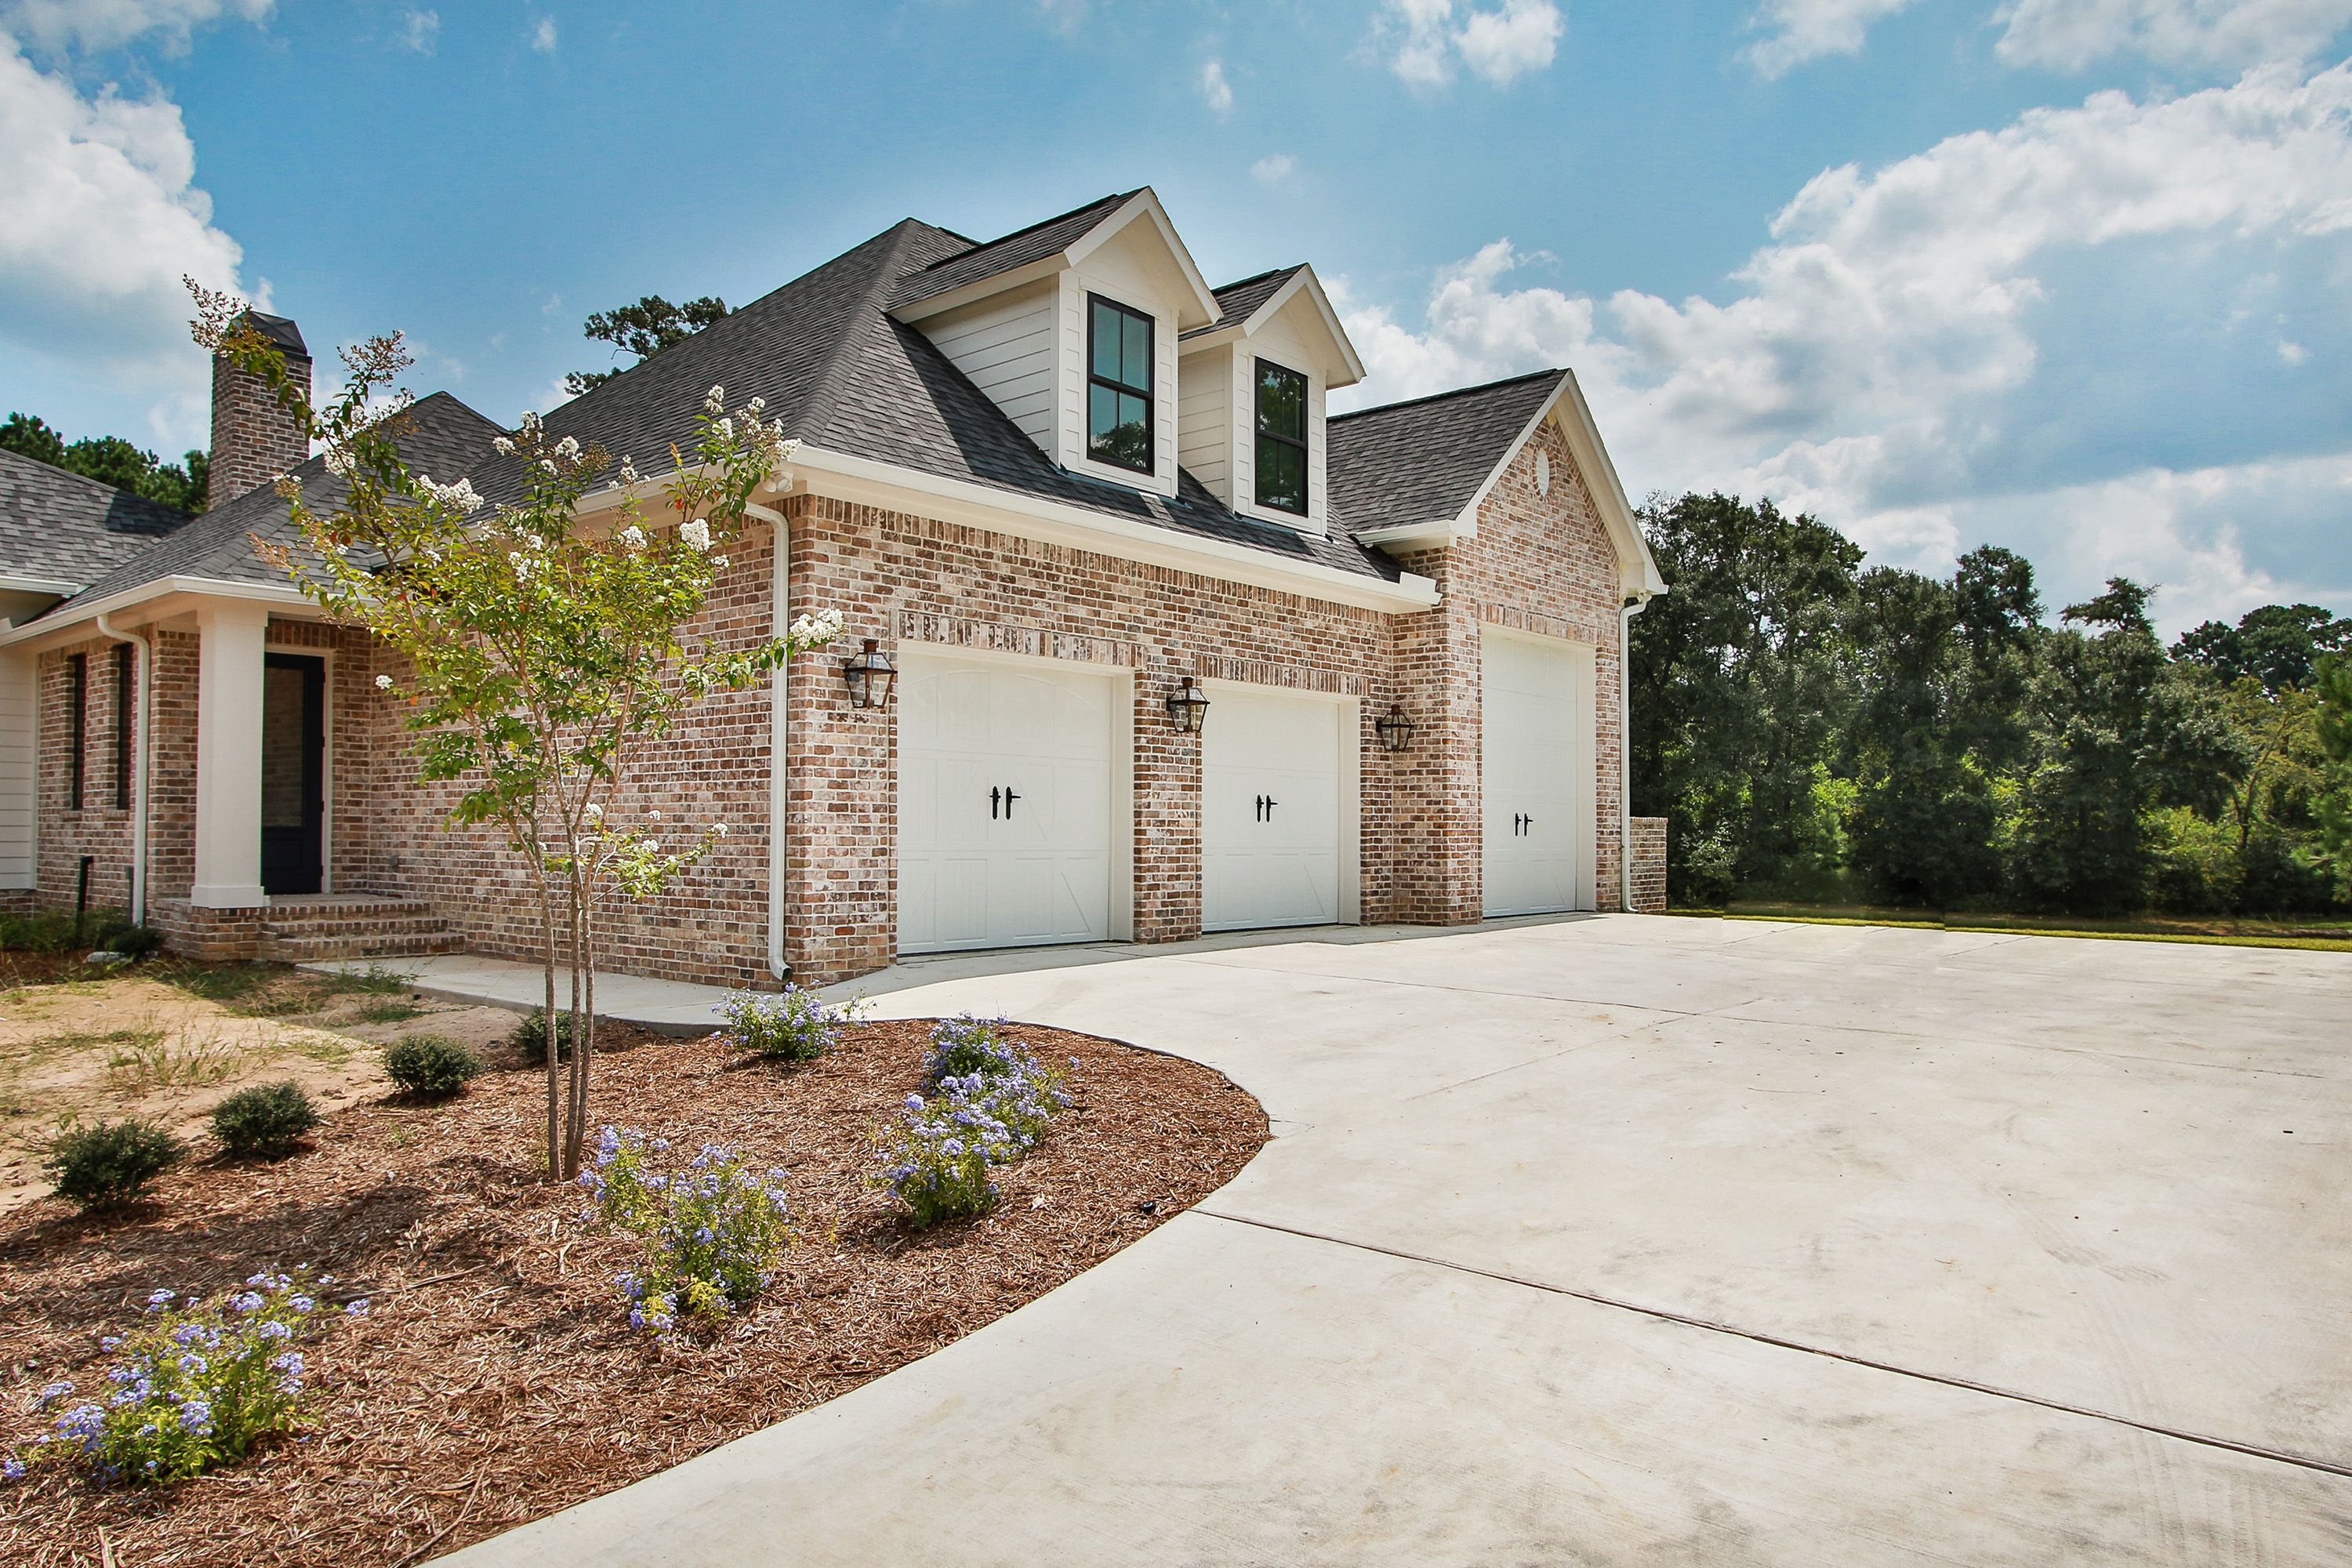 2 9 X8 White Closed Arch Garage Doors With 1 10 X11 White Closed Arch Garage Door Complete With Old Texas Acadian Style Homes House Styles Custom Homes